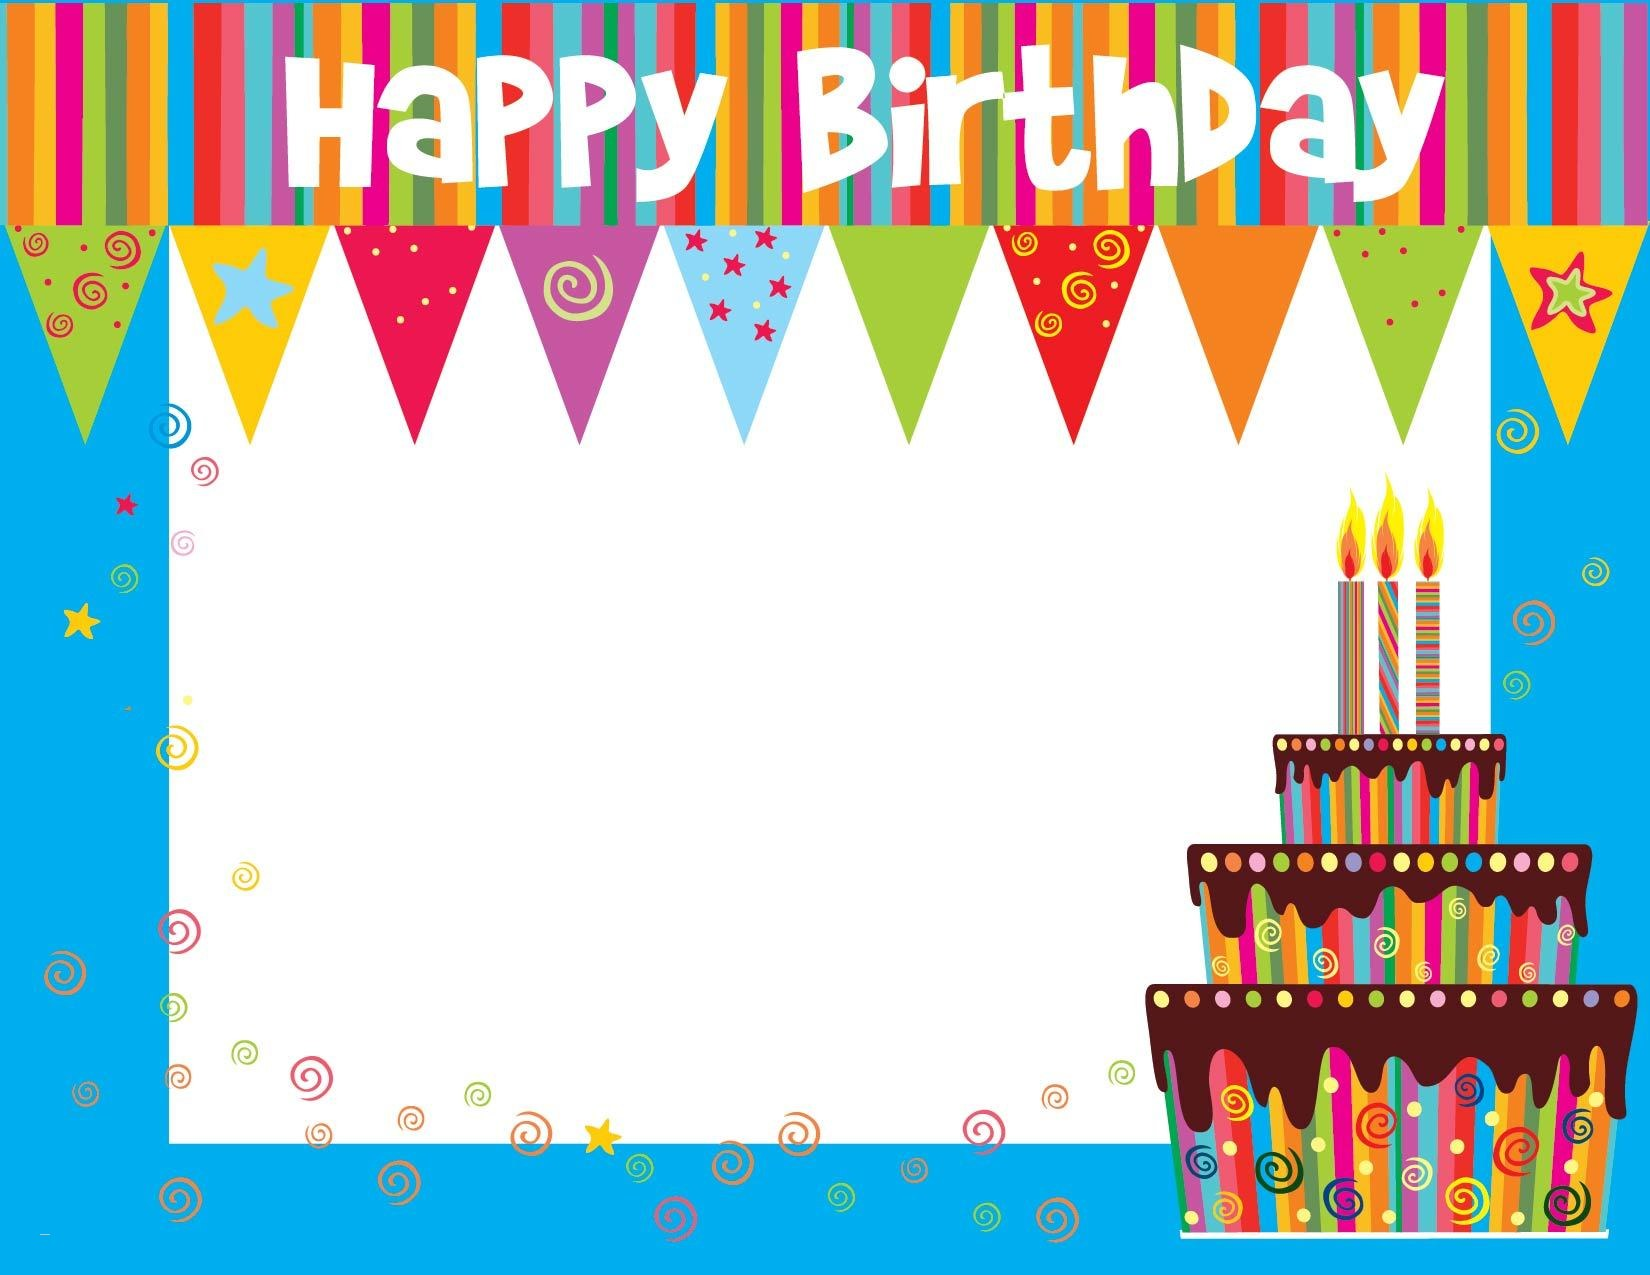 make a birthday card online free and printable ; create-greeting-cards-online-free-printable-best-of-printable-birthday-cards-worksheets-for-all-of-create-greeting-cards-online-free-printable